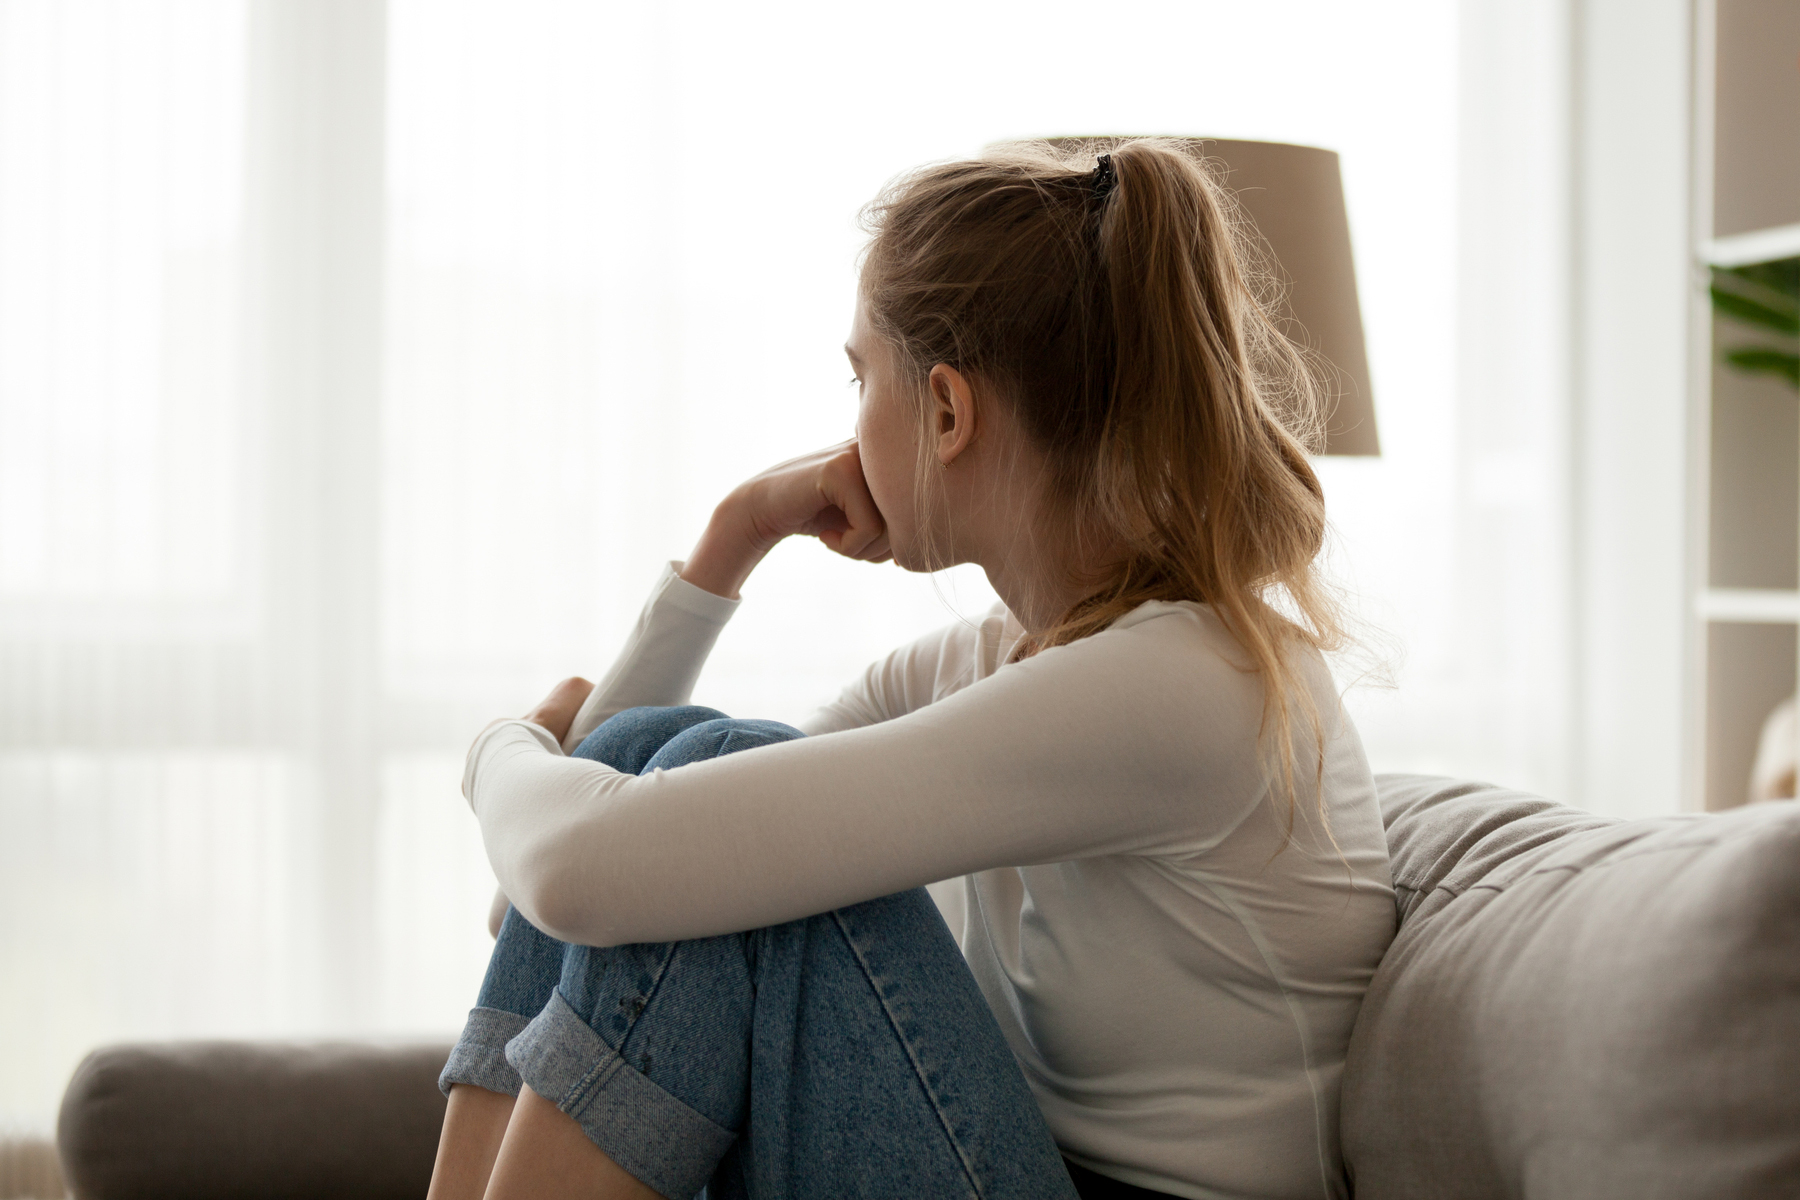 Pensive woman sitting on a couch